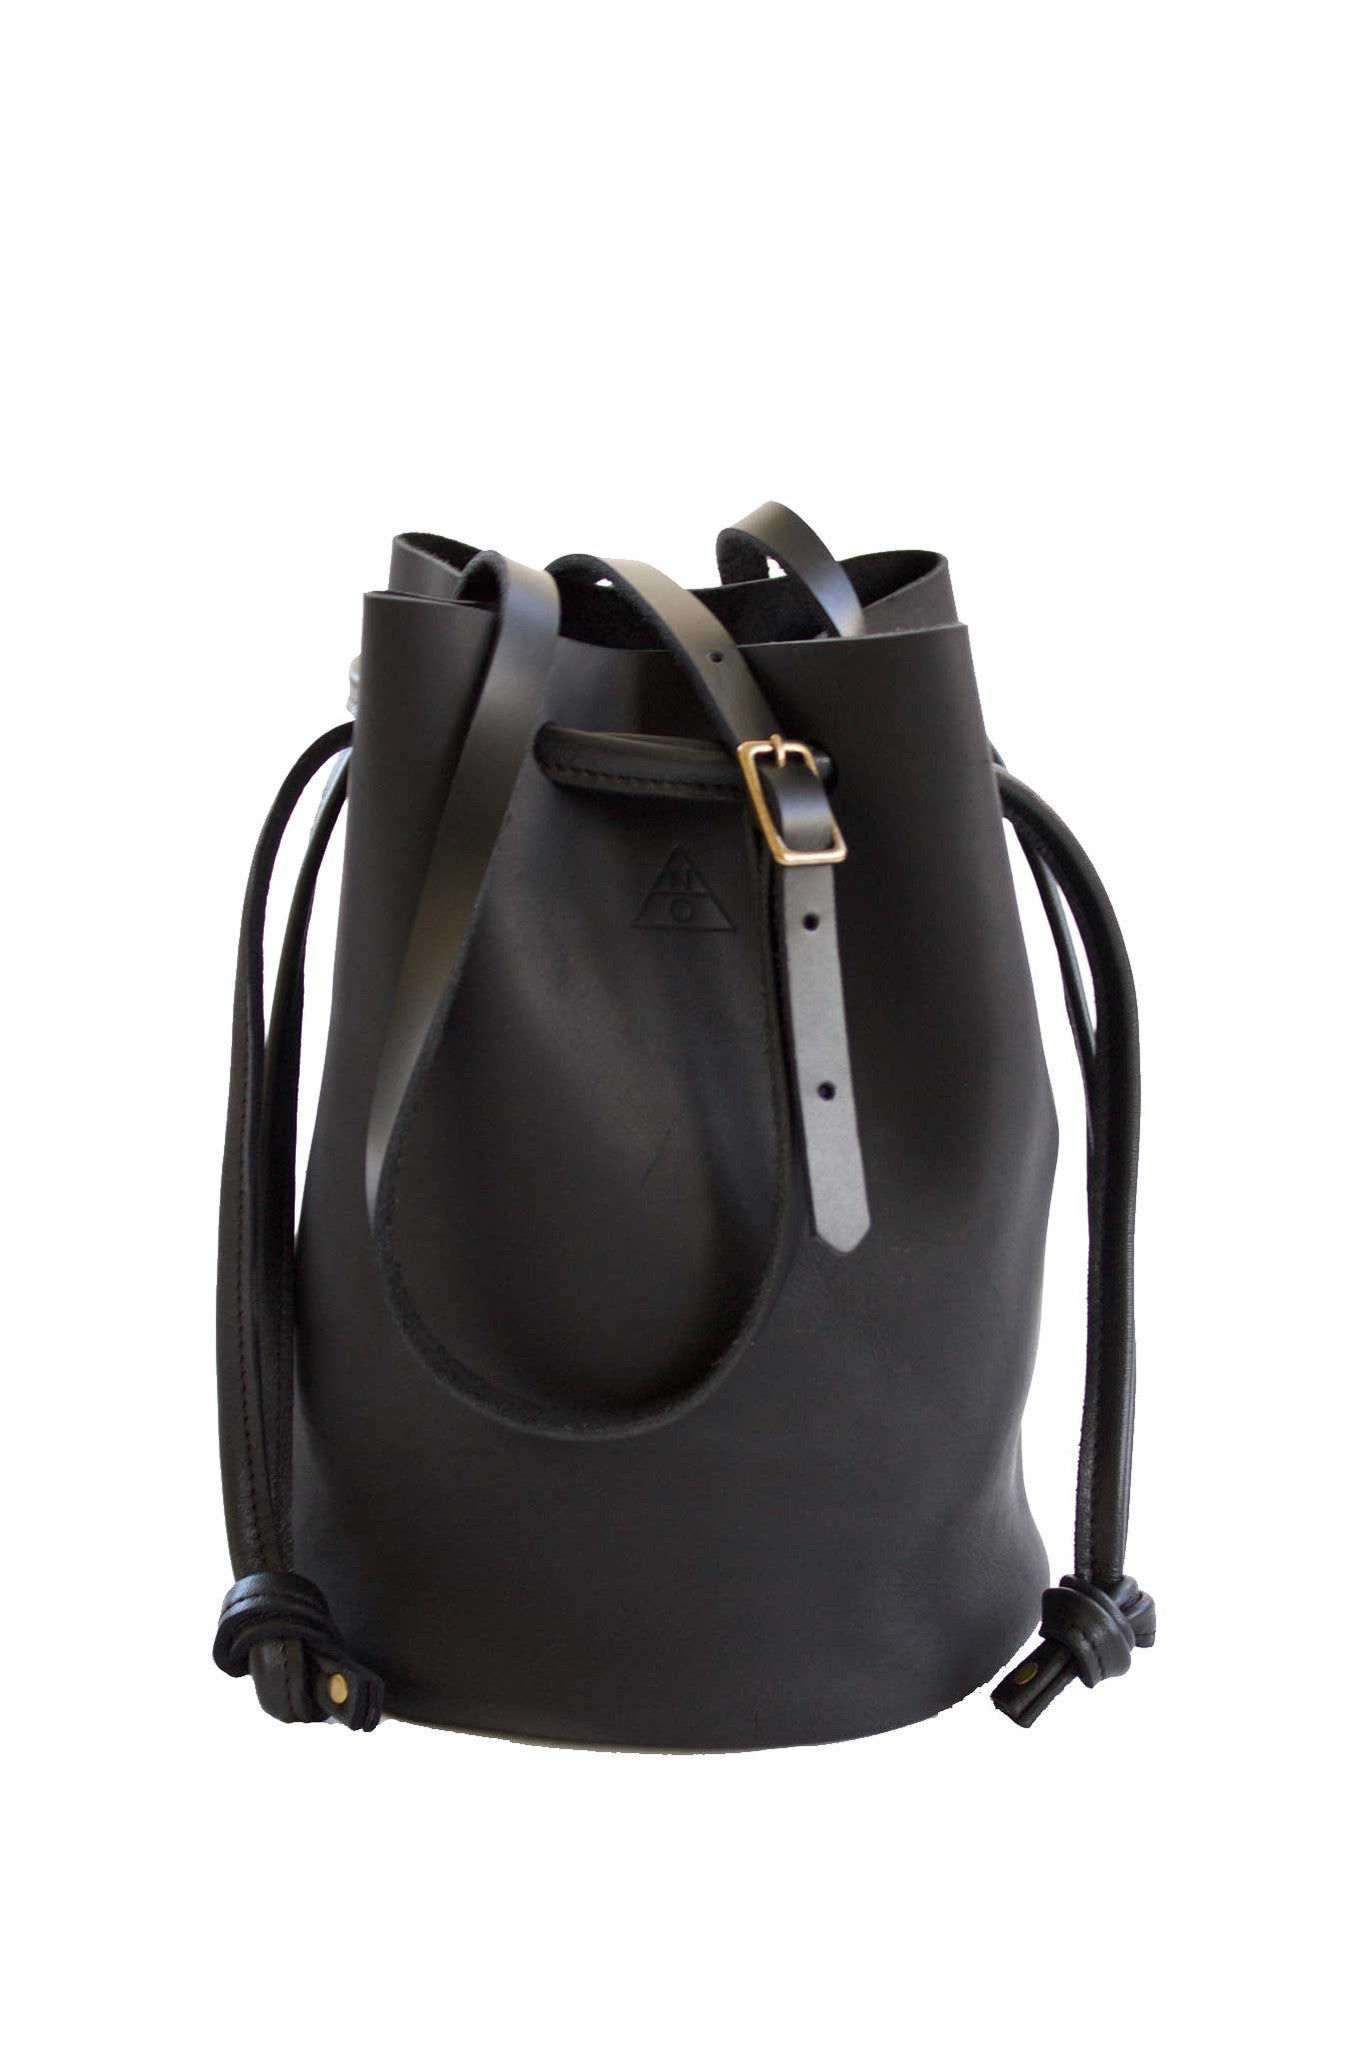 Ana Minimal Black Leather Bucket Bag